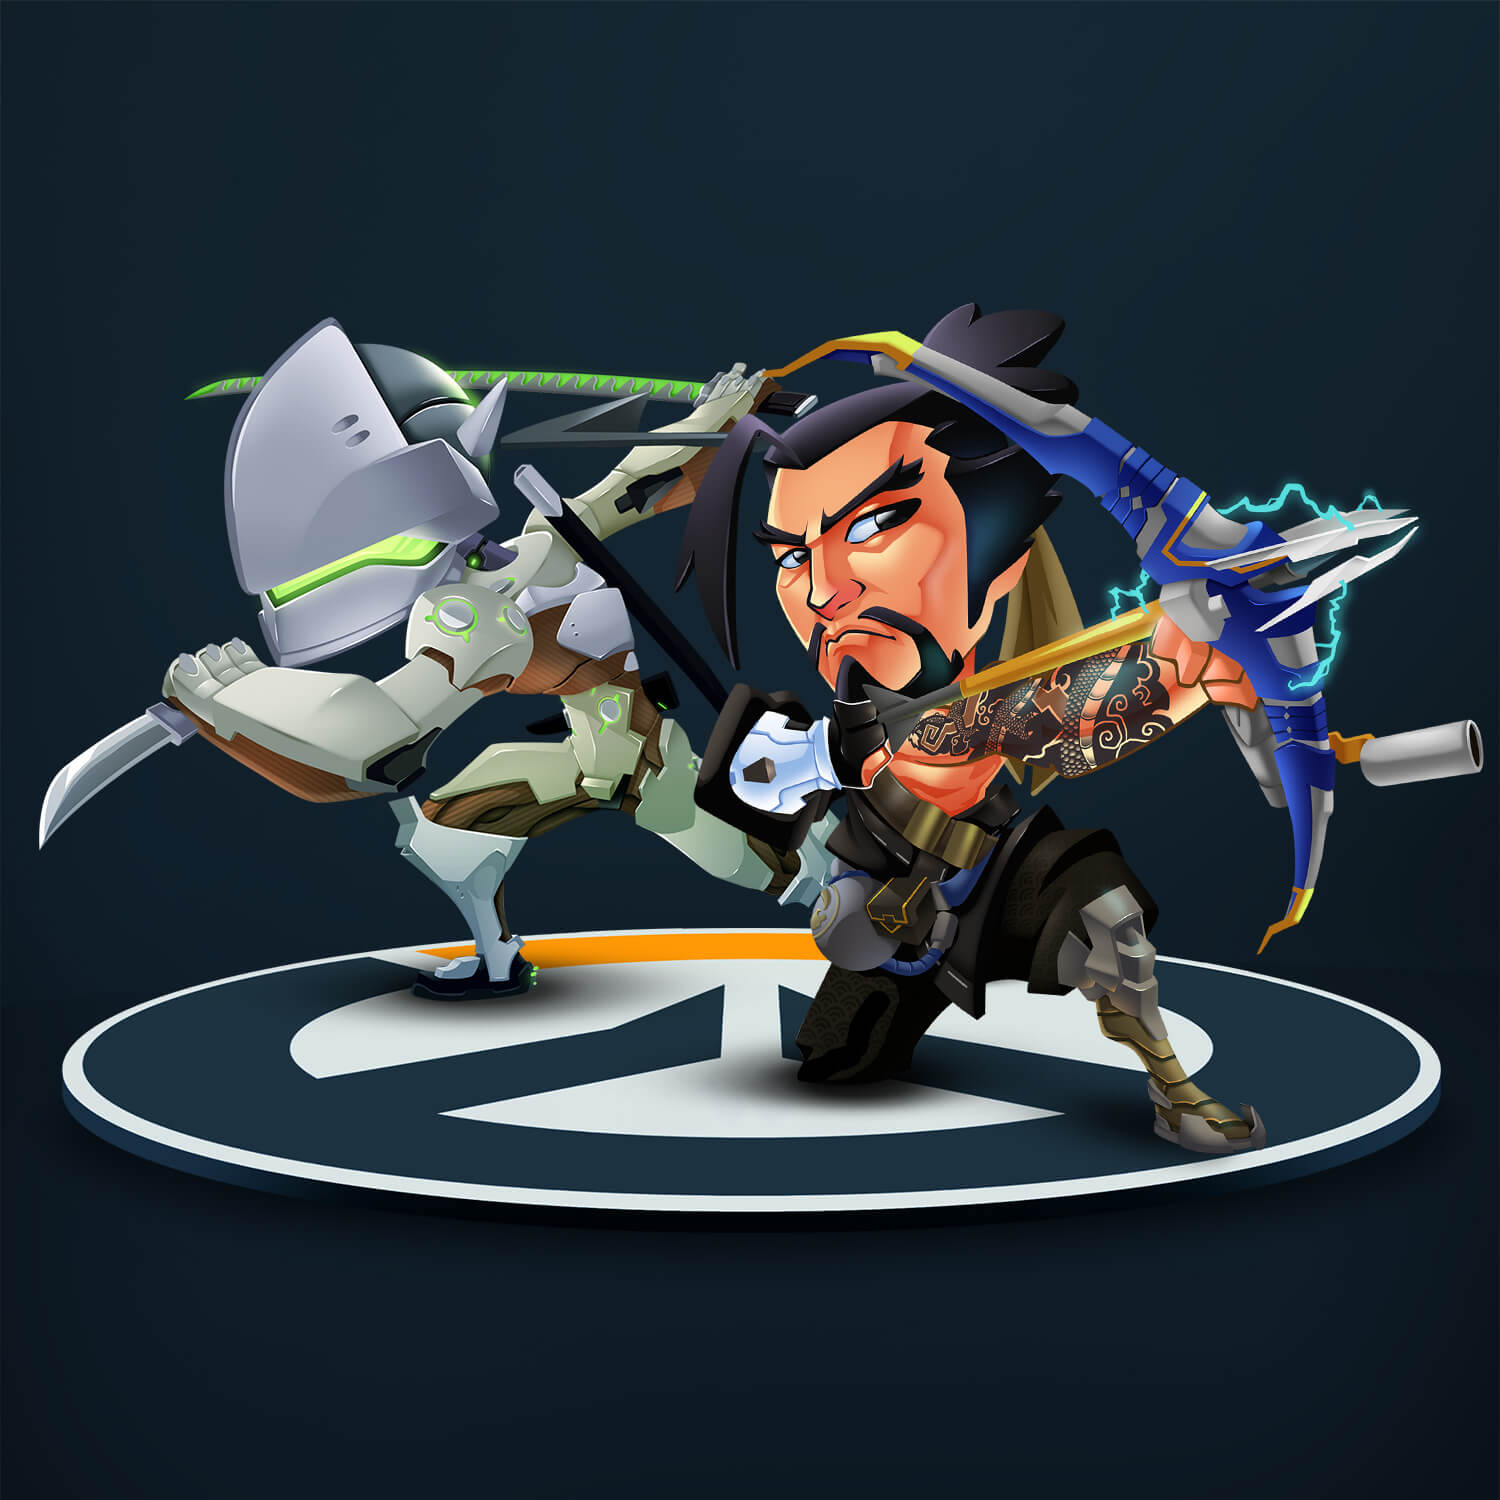 Genji and Hanzo Illustrations